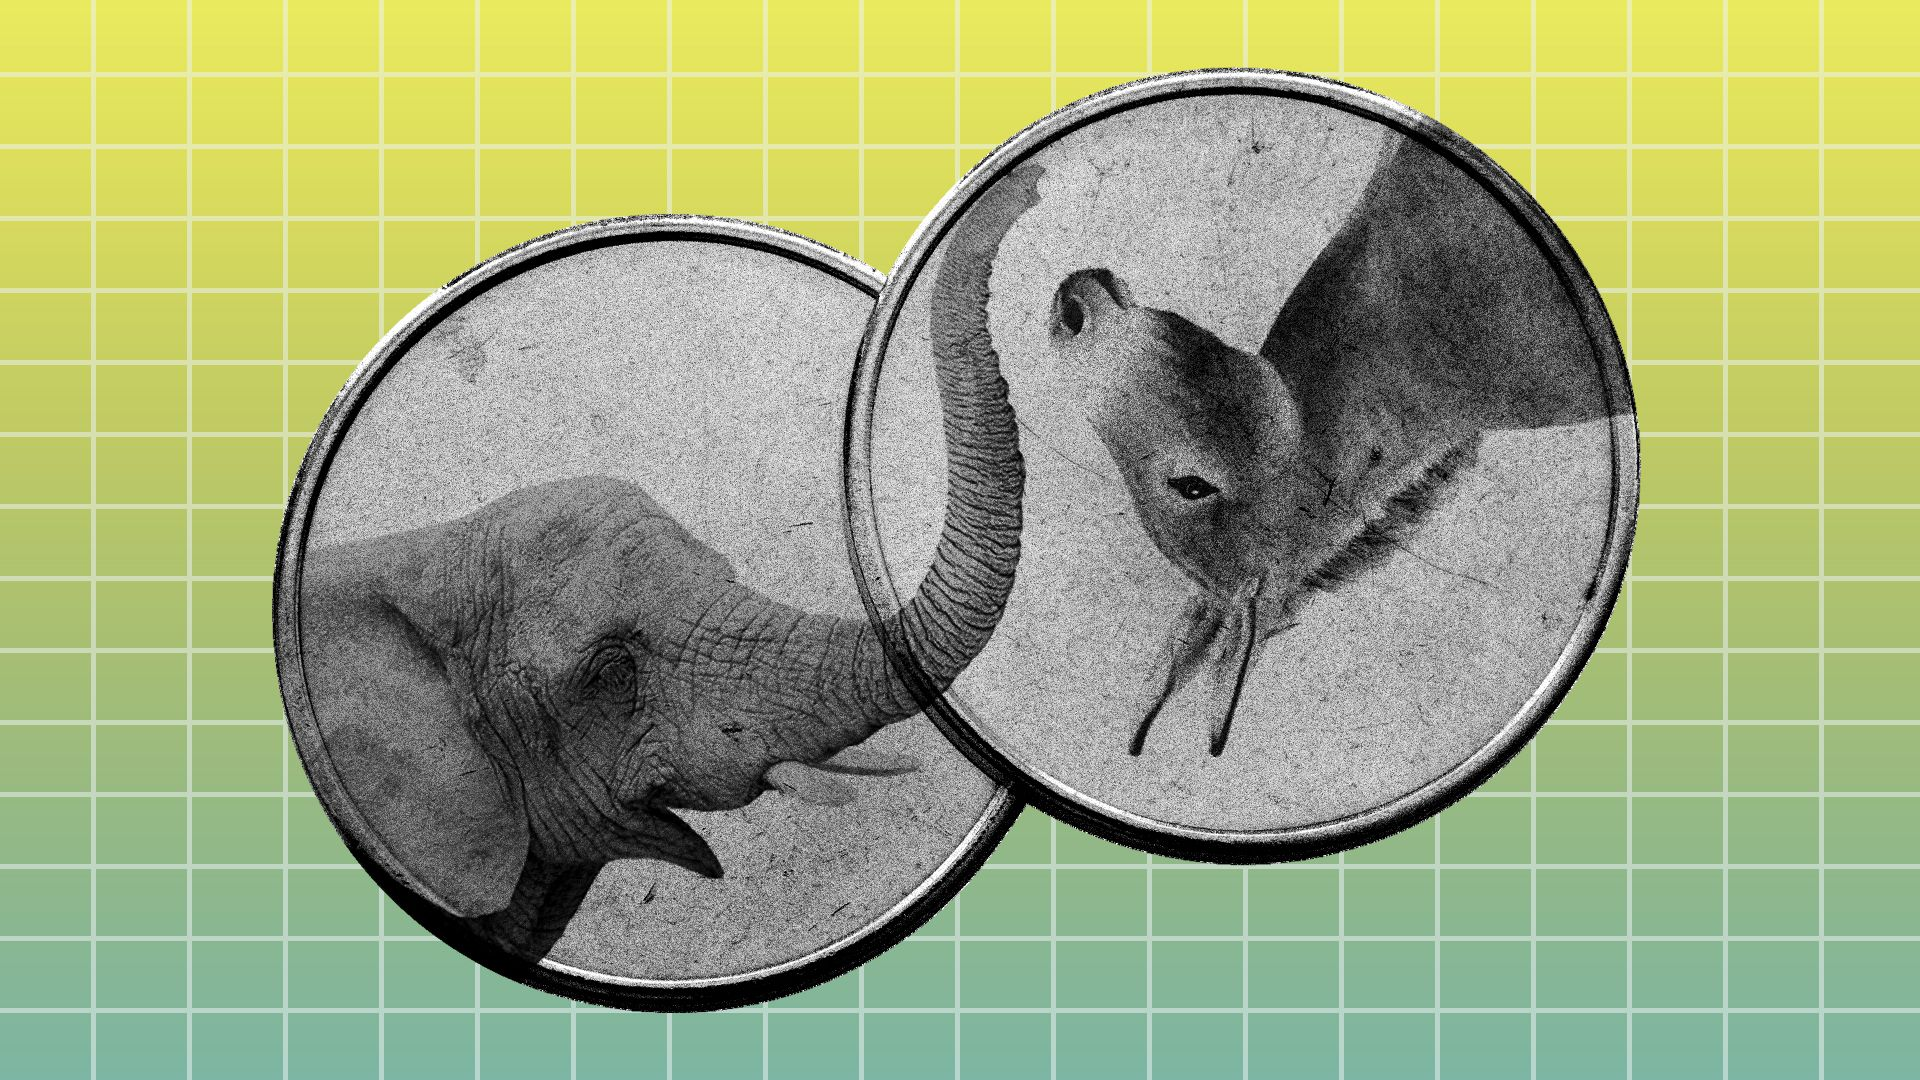 Two coins with an elephant and a donkey on each one